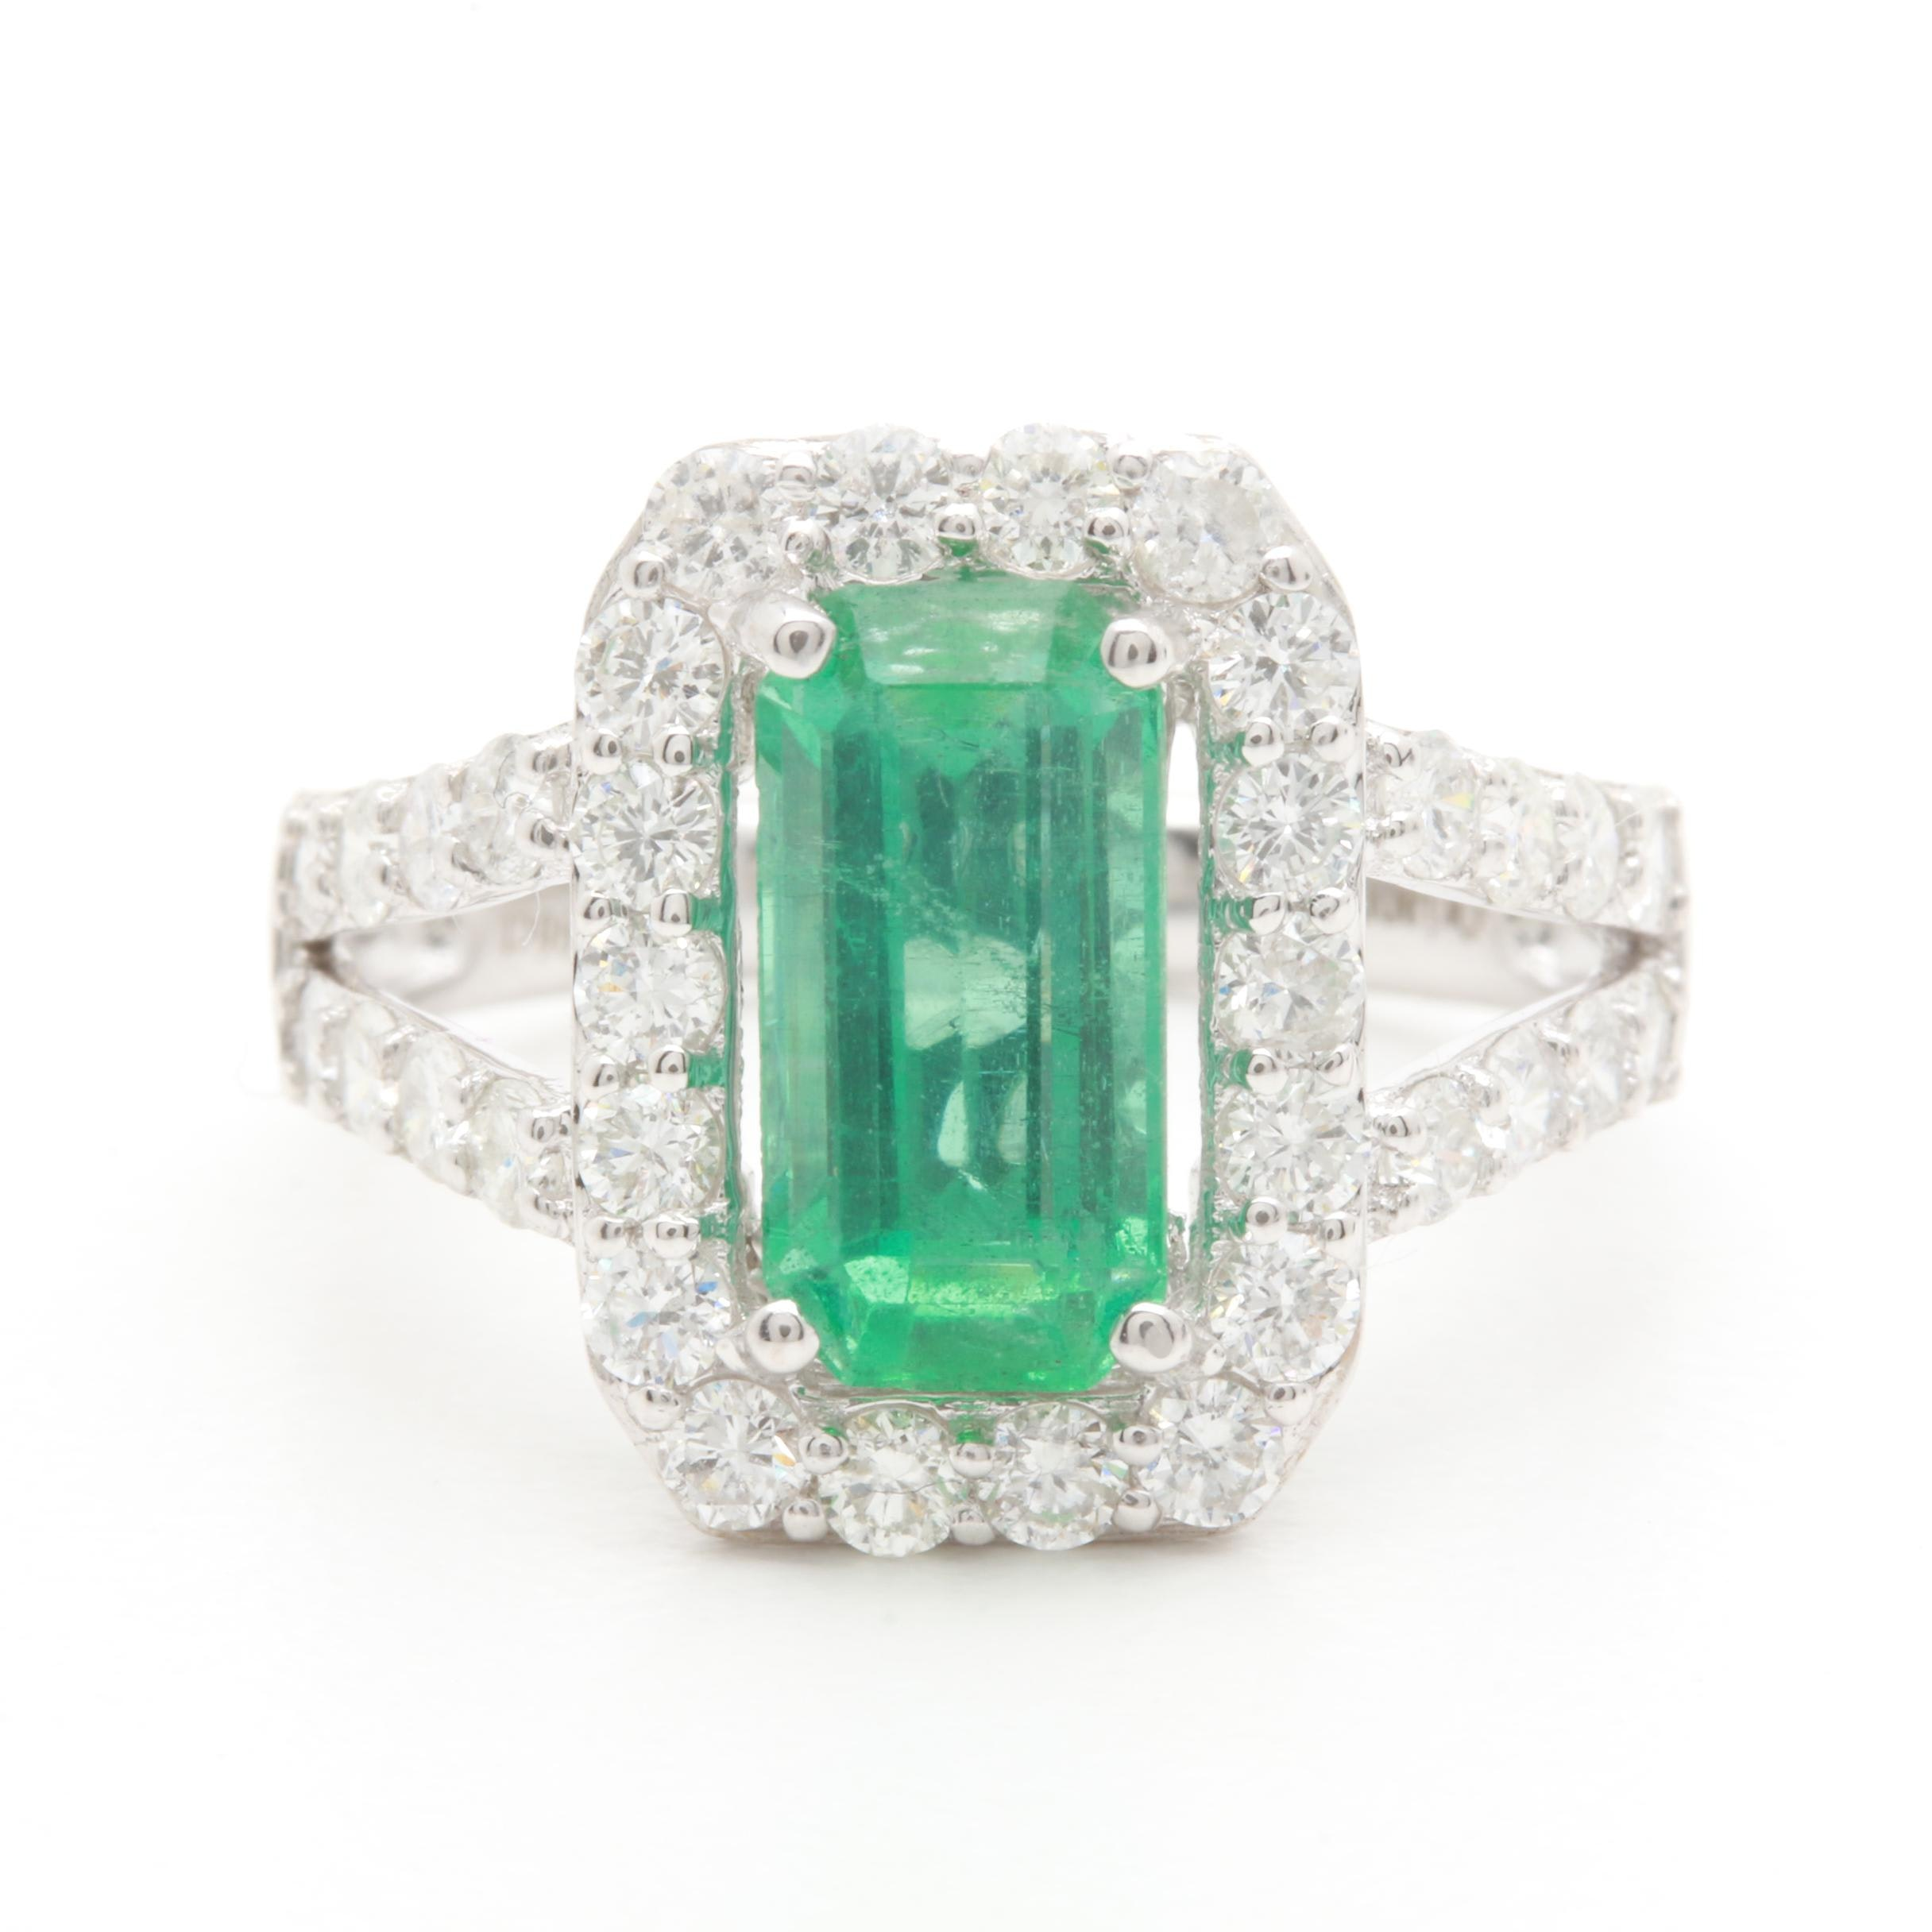 14K White Gold 1.74 CT Emerald and 1.02 CTW Diamond Ring